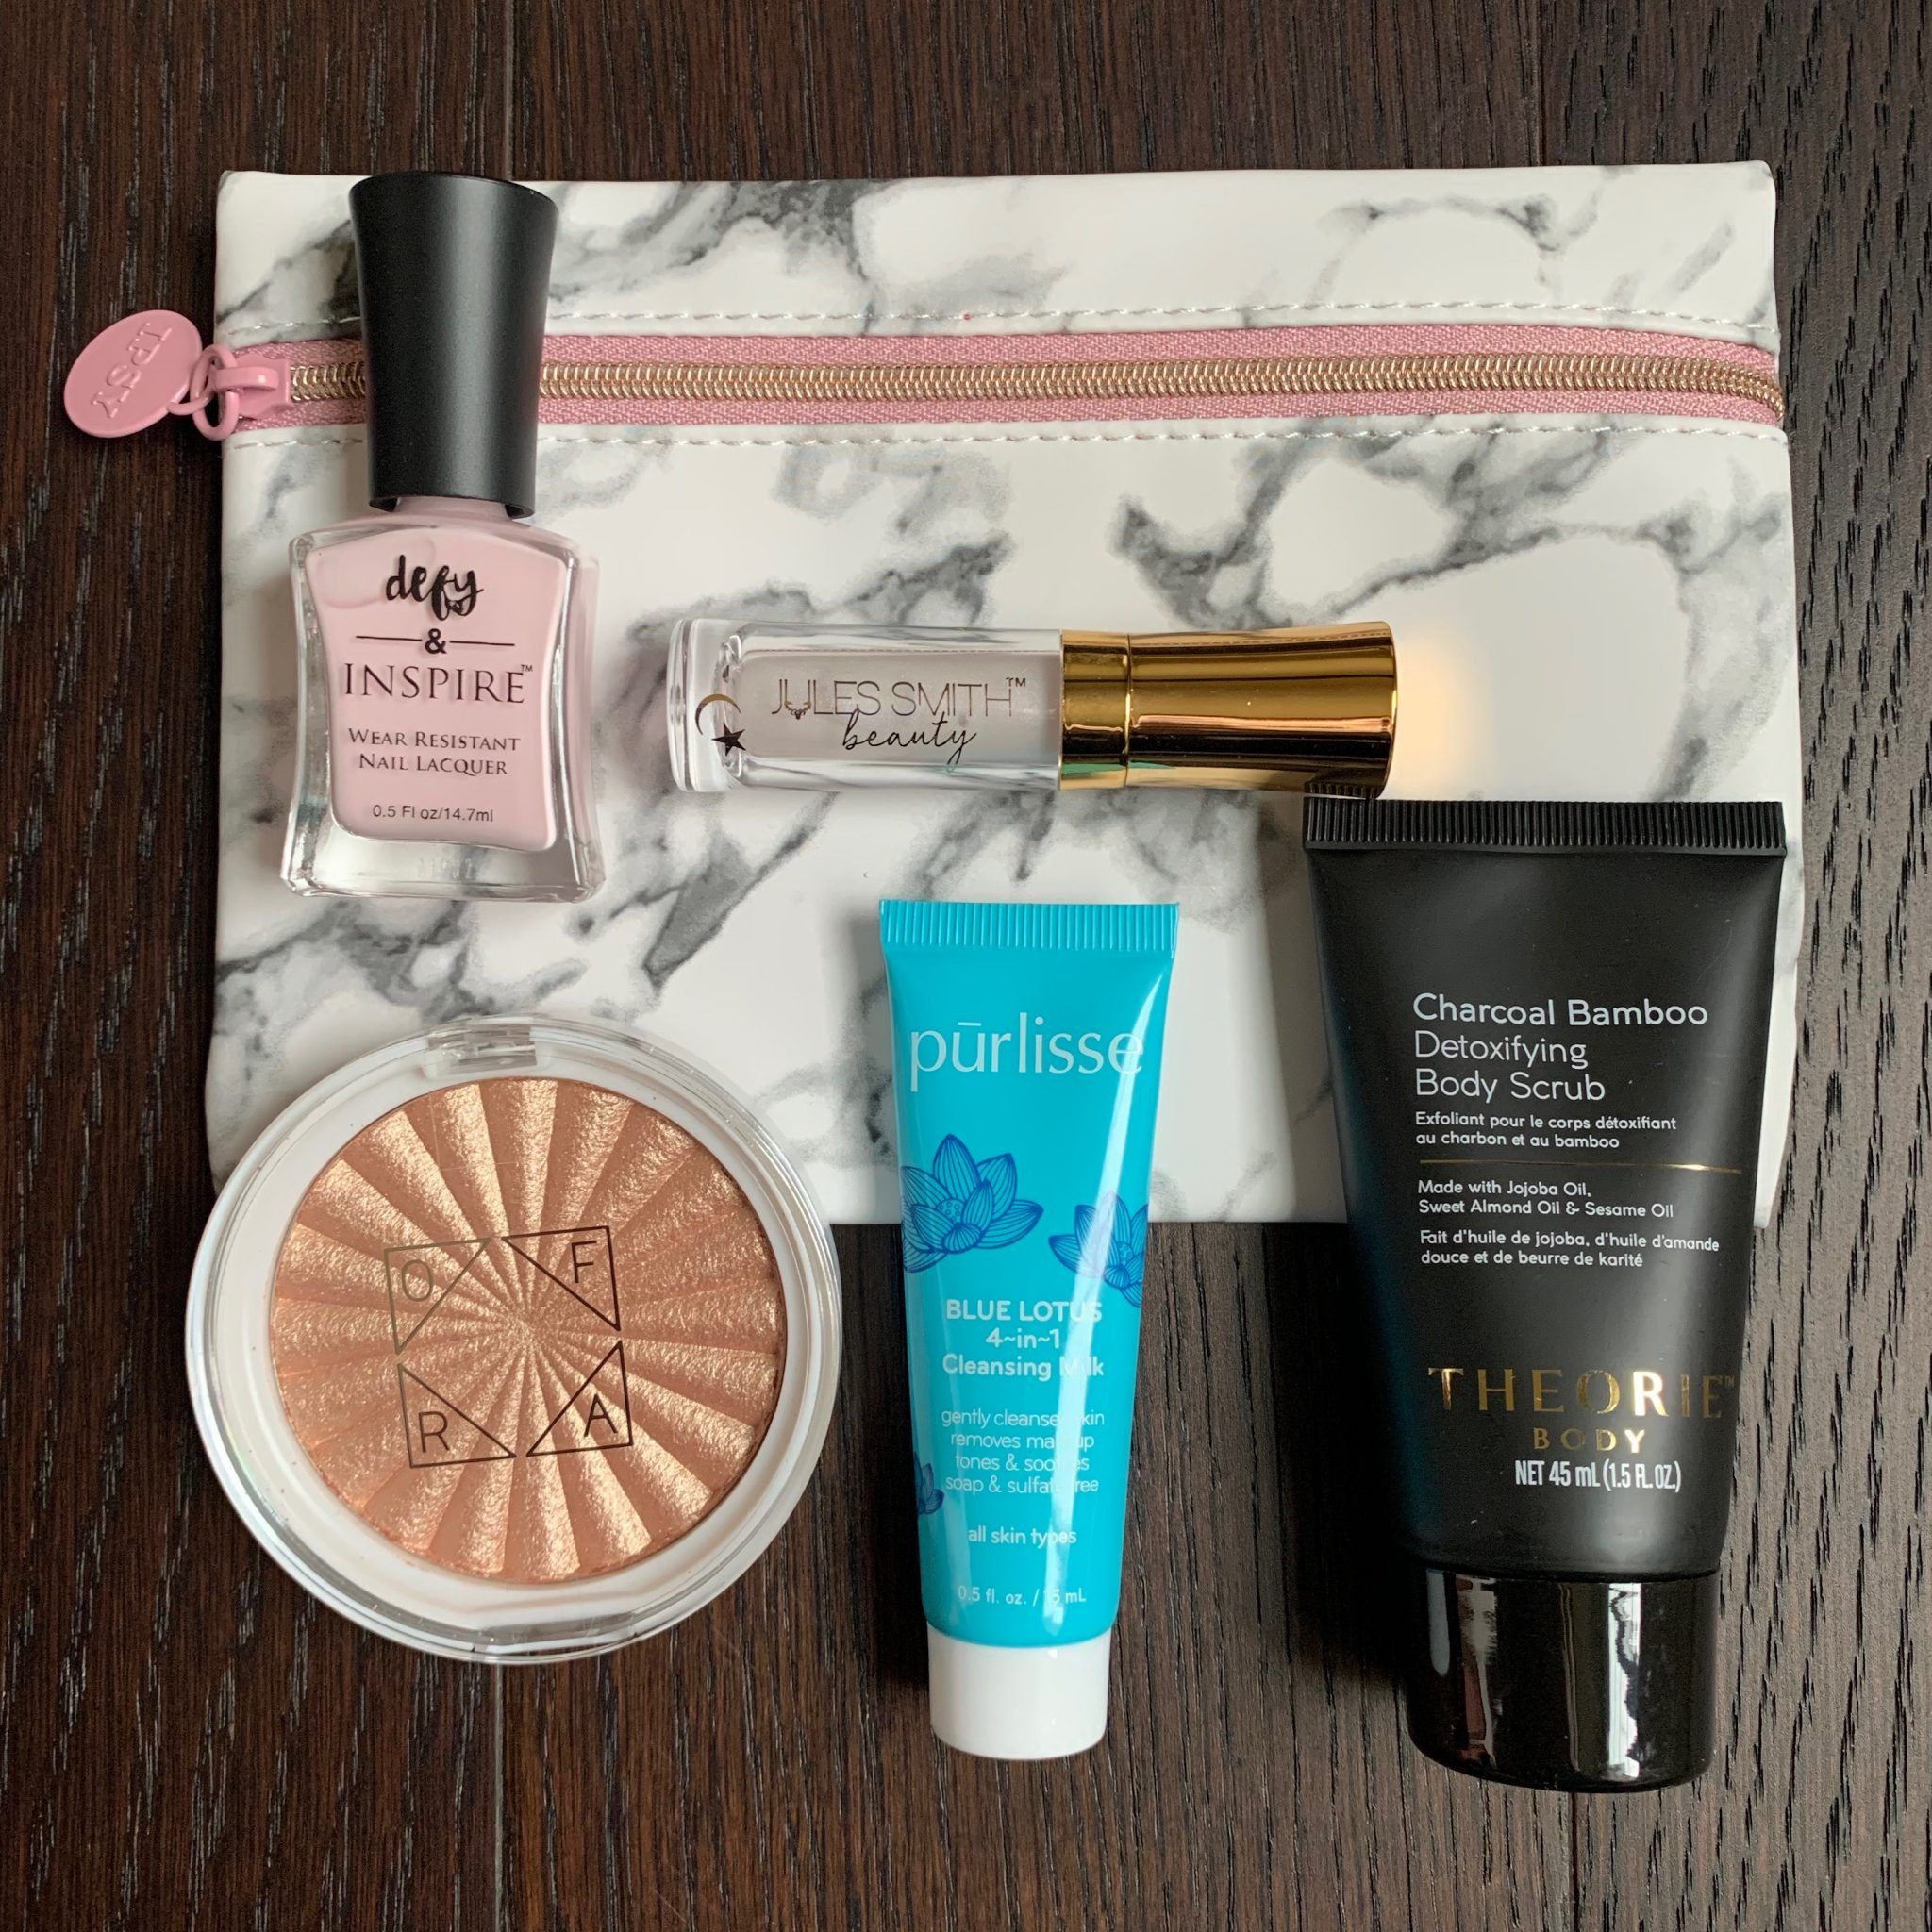 ipsy Review January 2020 Subscription Box Ramblings in